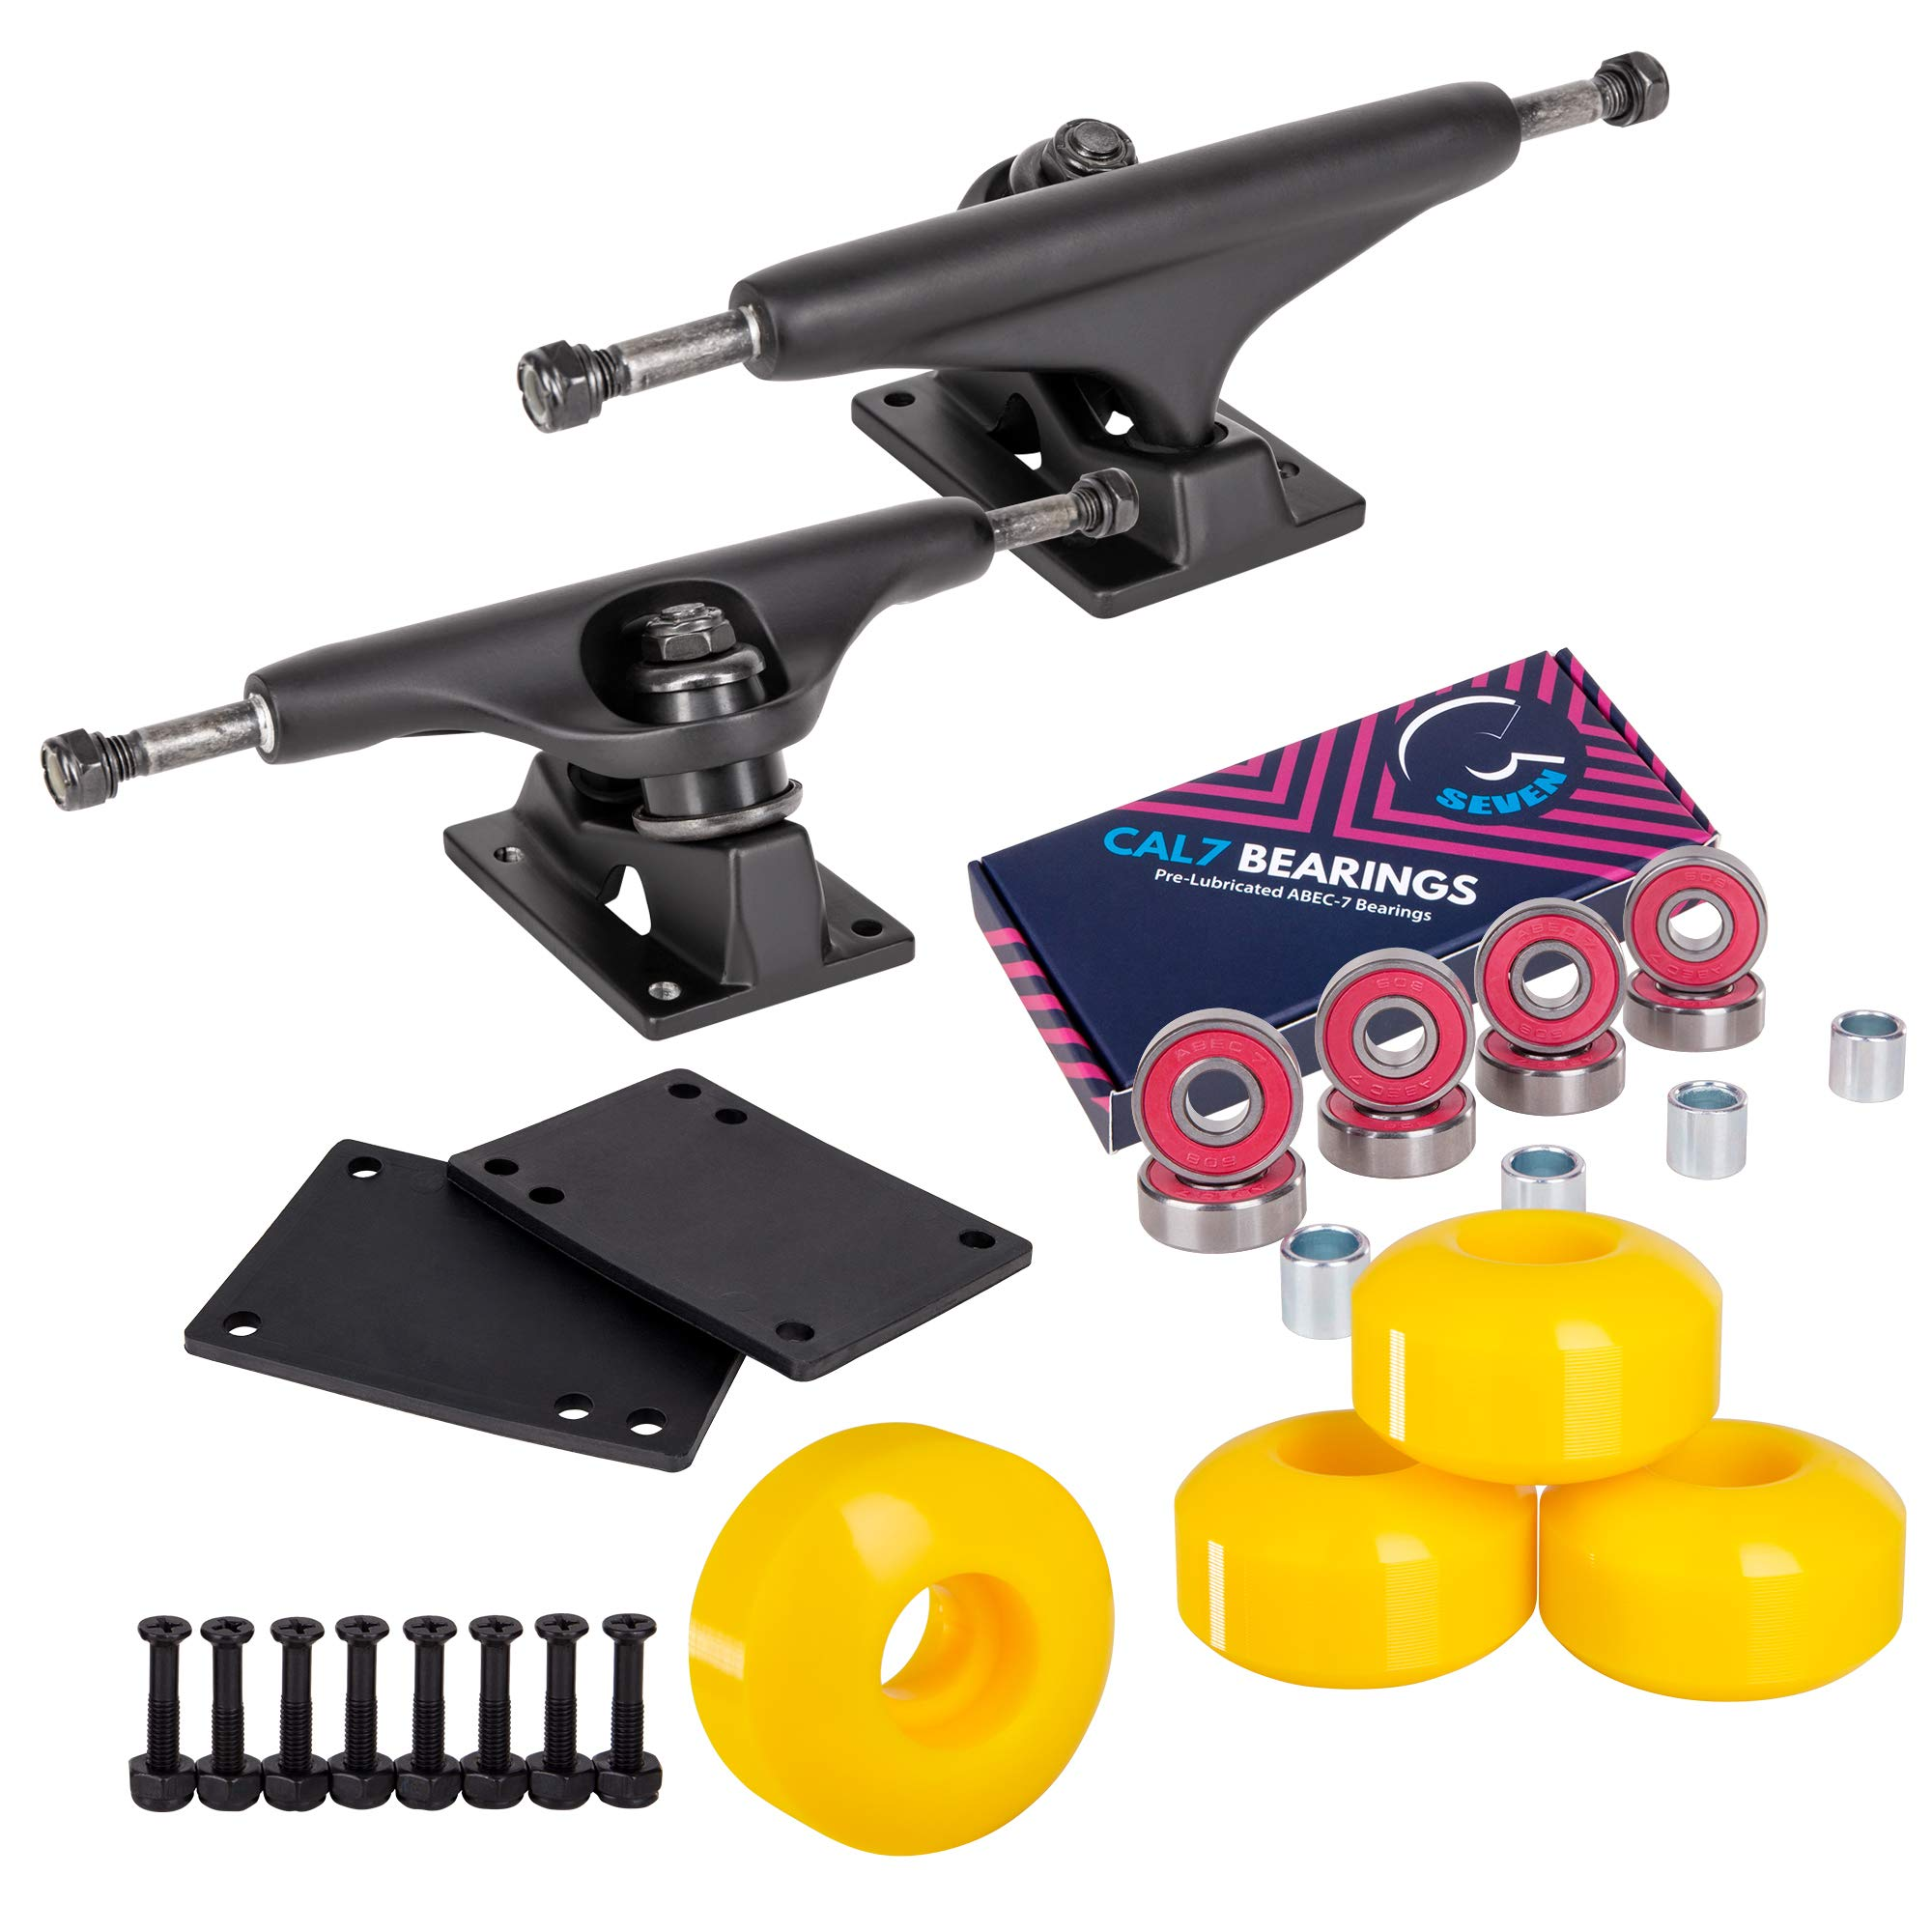 Cal 7 Skateboard Package, Complete Combo Set with 5.5 Inch Quality Aluminum Trucks, 52mm 99A Wheels, Bearings & Hardware (Yellow) by Cal 7